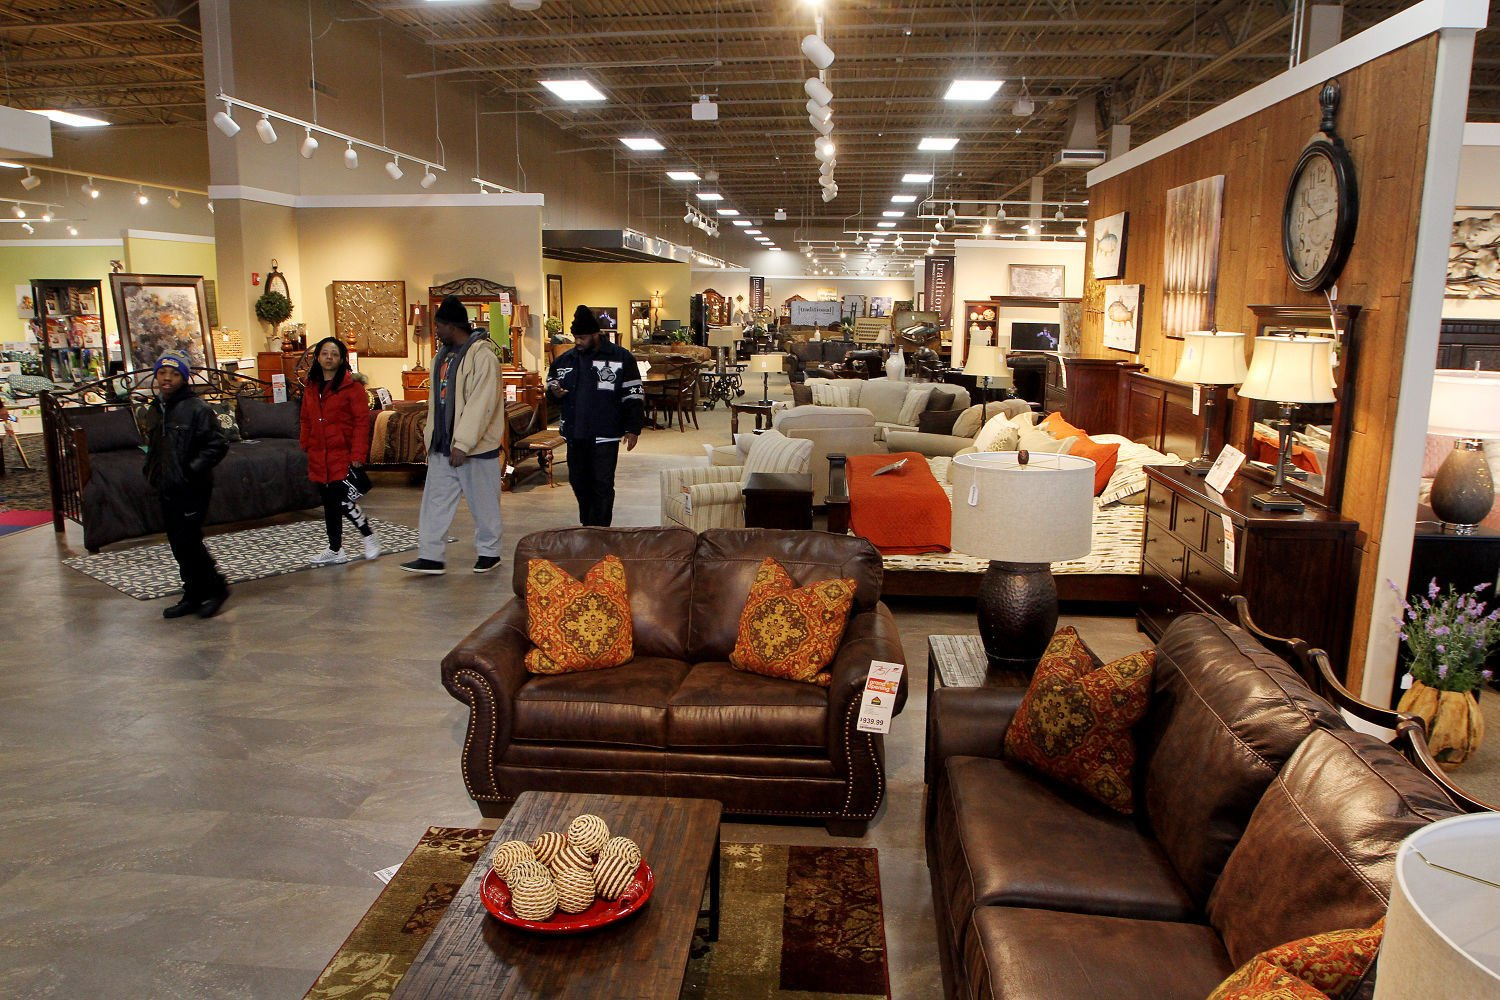 ashley furniture officially joins elmore avenue retail lineup rh qctimes com